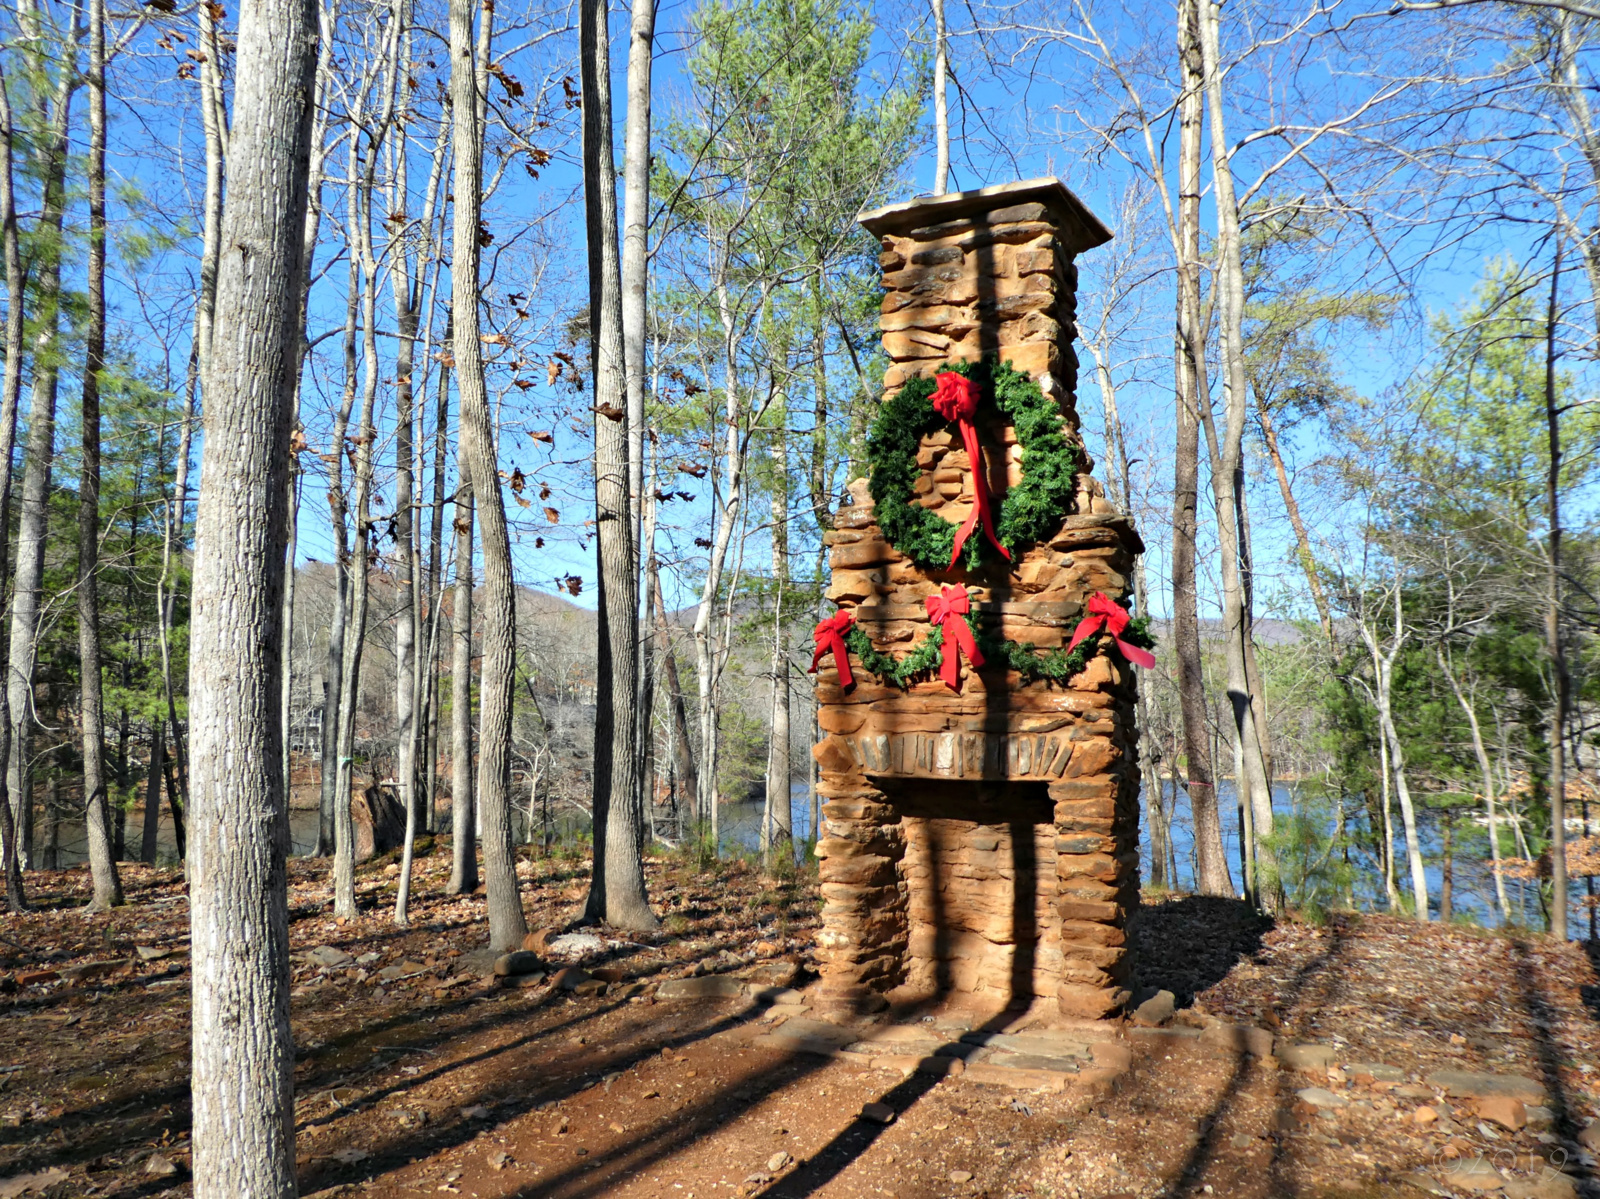 December 1, 2019 - Sallie Doss chimney in Bent Tree